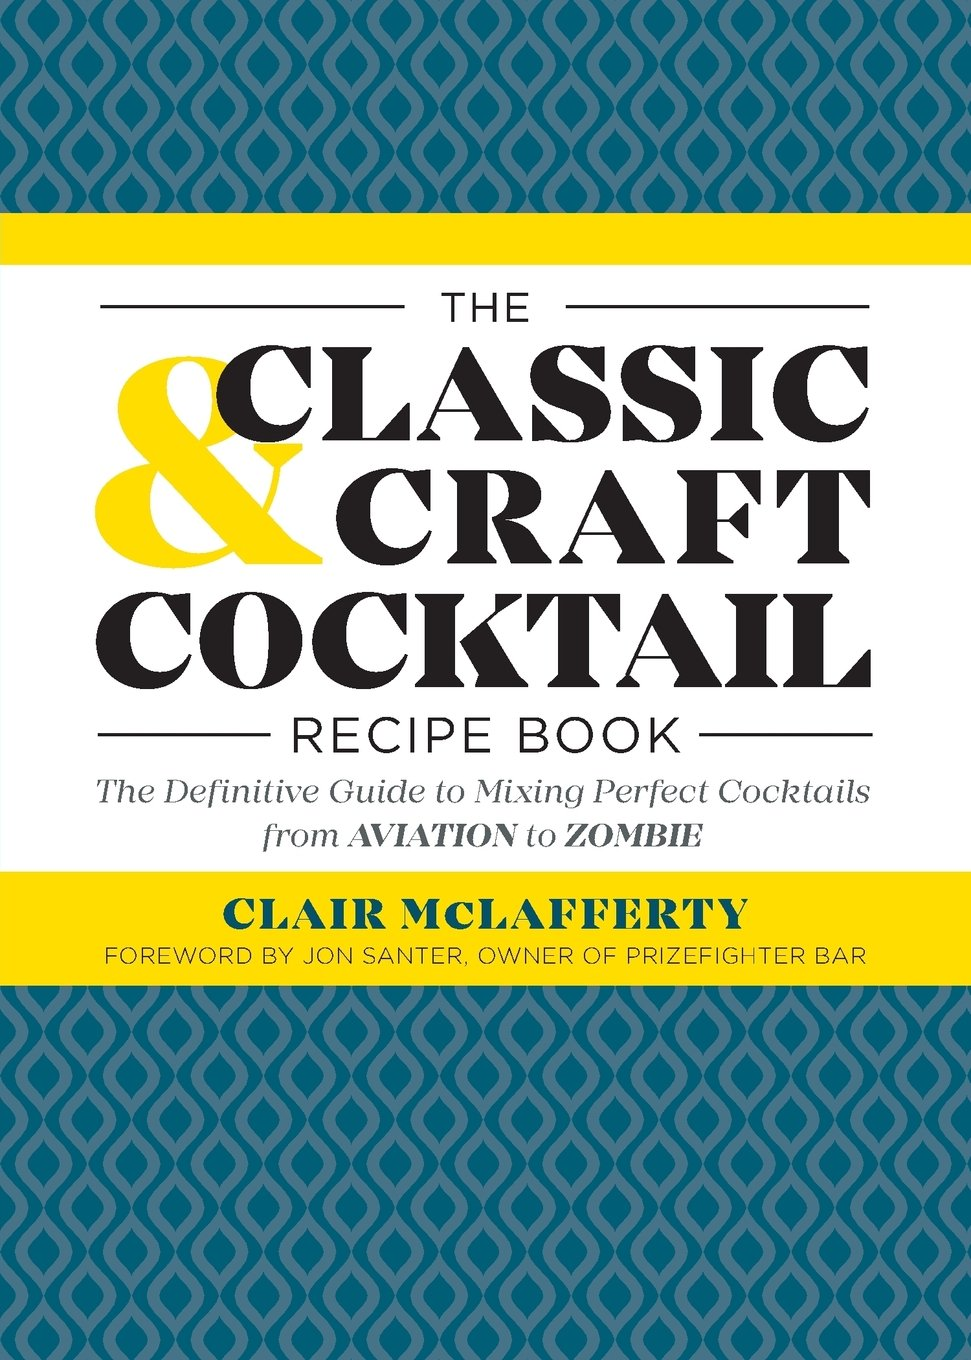 Download The Classic & Craft Cocktail Recipe Book: The Definitive Guide to Mixing Perfect Cocktails from Aviation to Zombie pdf